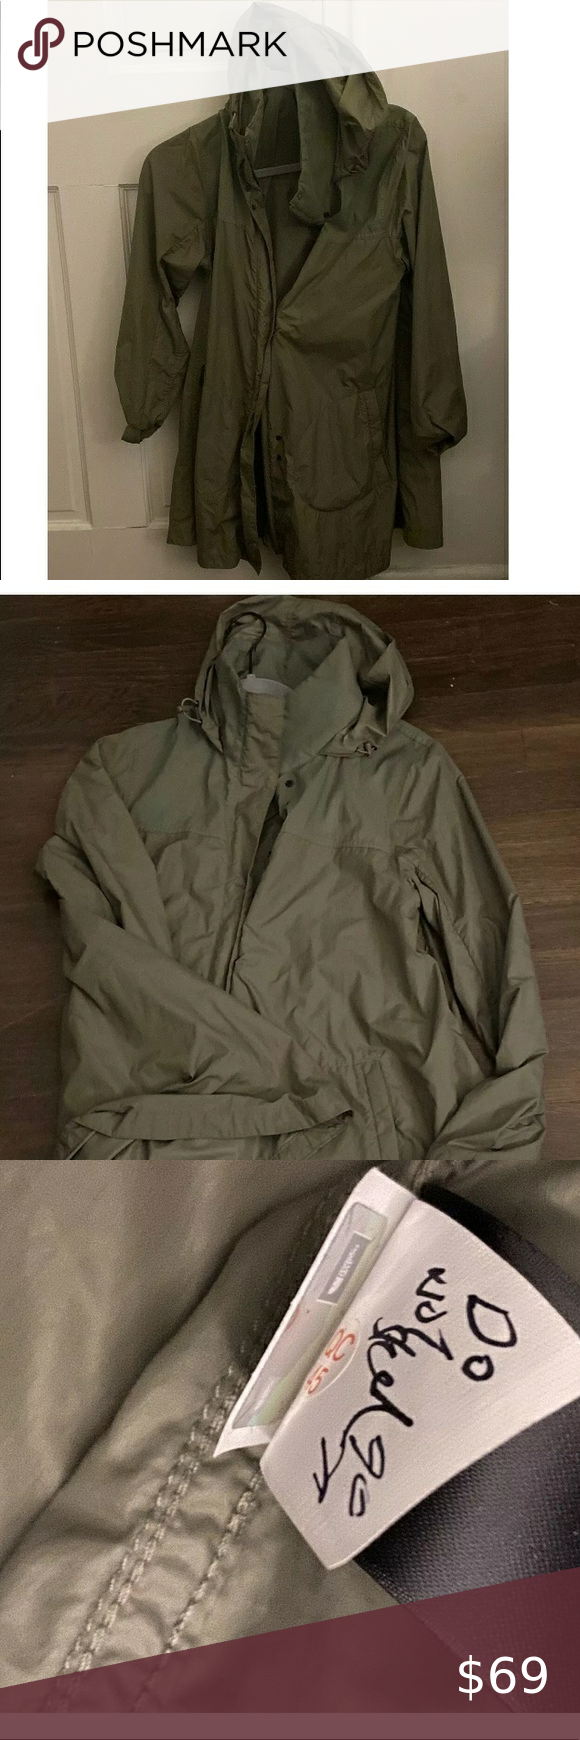 The North Face Olive Green Windbreaker Jacket Chic Green Windbreaker Windbreaker Jacket Black North Face Jacket [ 1740 x 580 Pixel ]